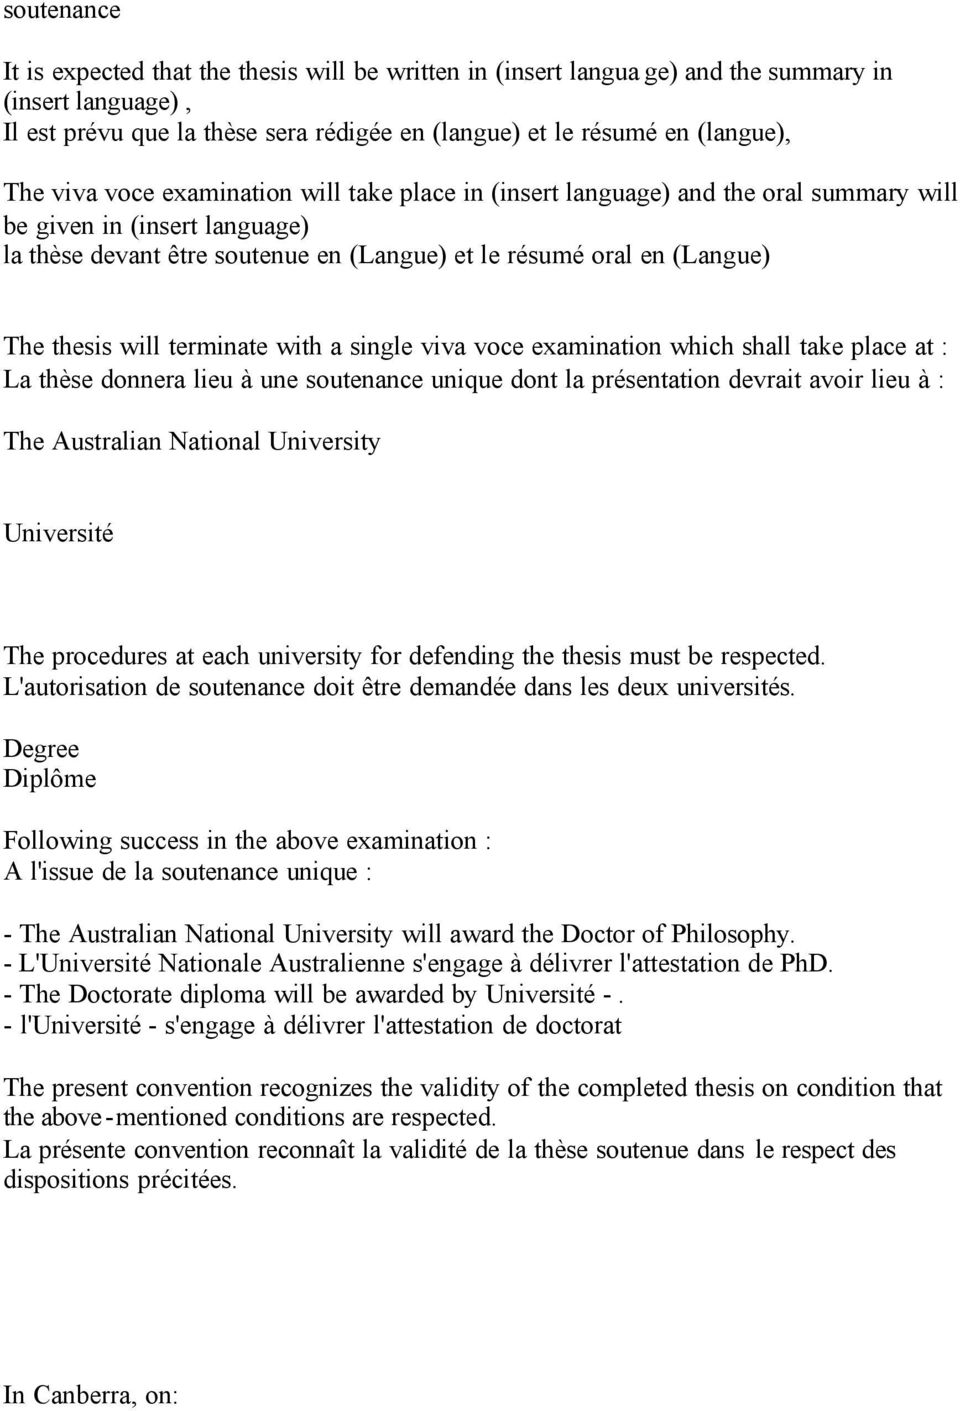 will terminate with a single viva voce examination which shall take place at : La thèse donnera lieu à une soutenance unique dont la présentation devrait avoir lieu à : The procedures at each